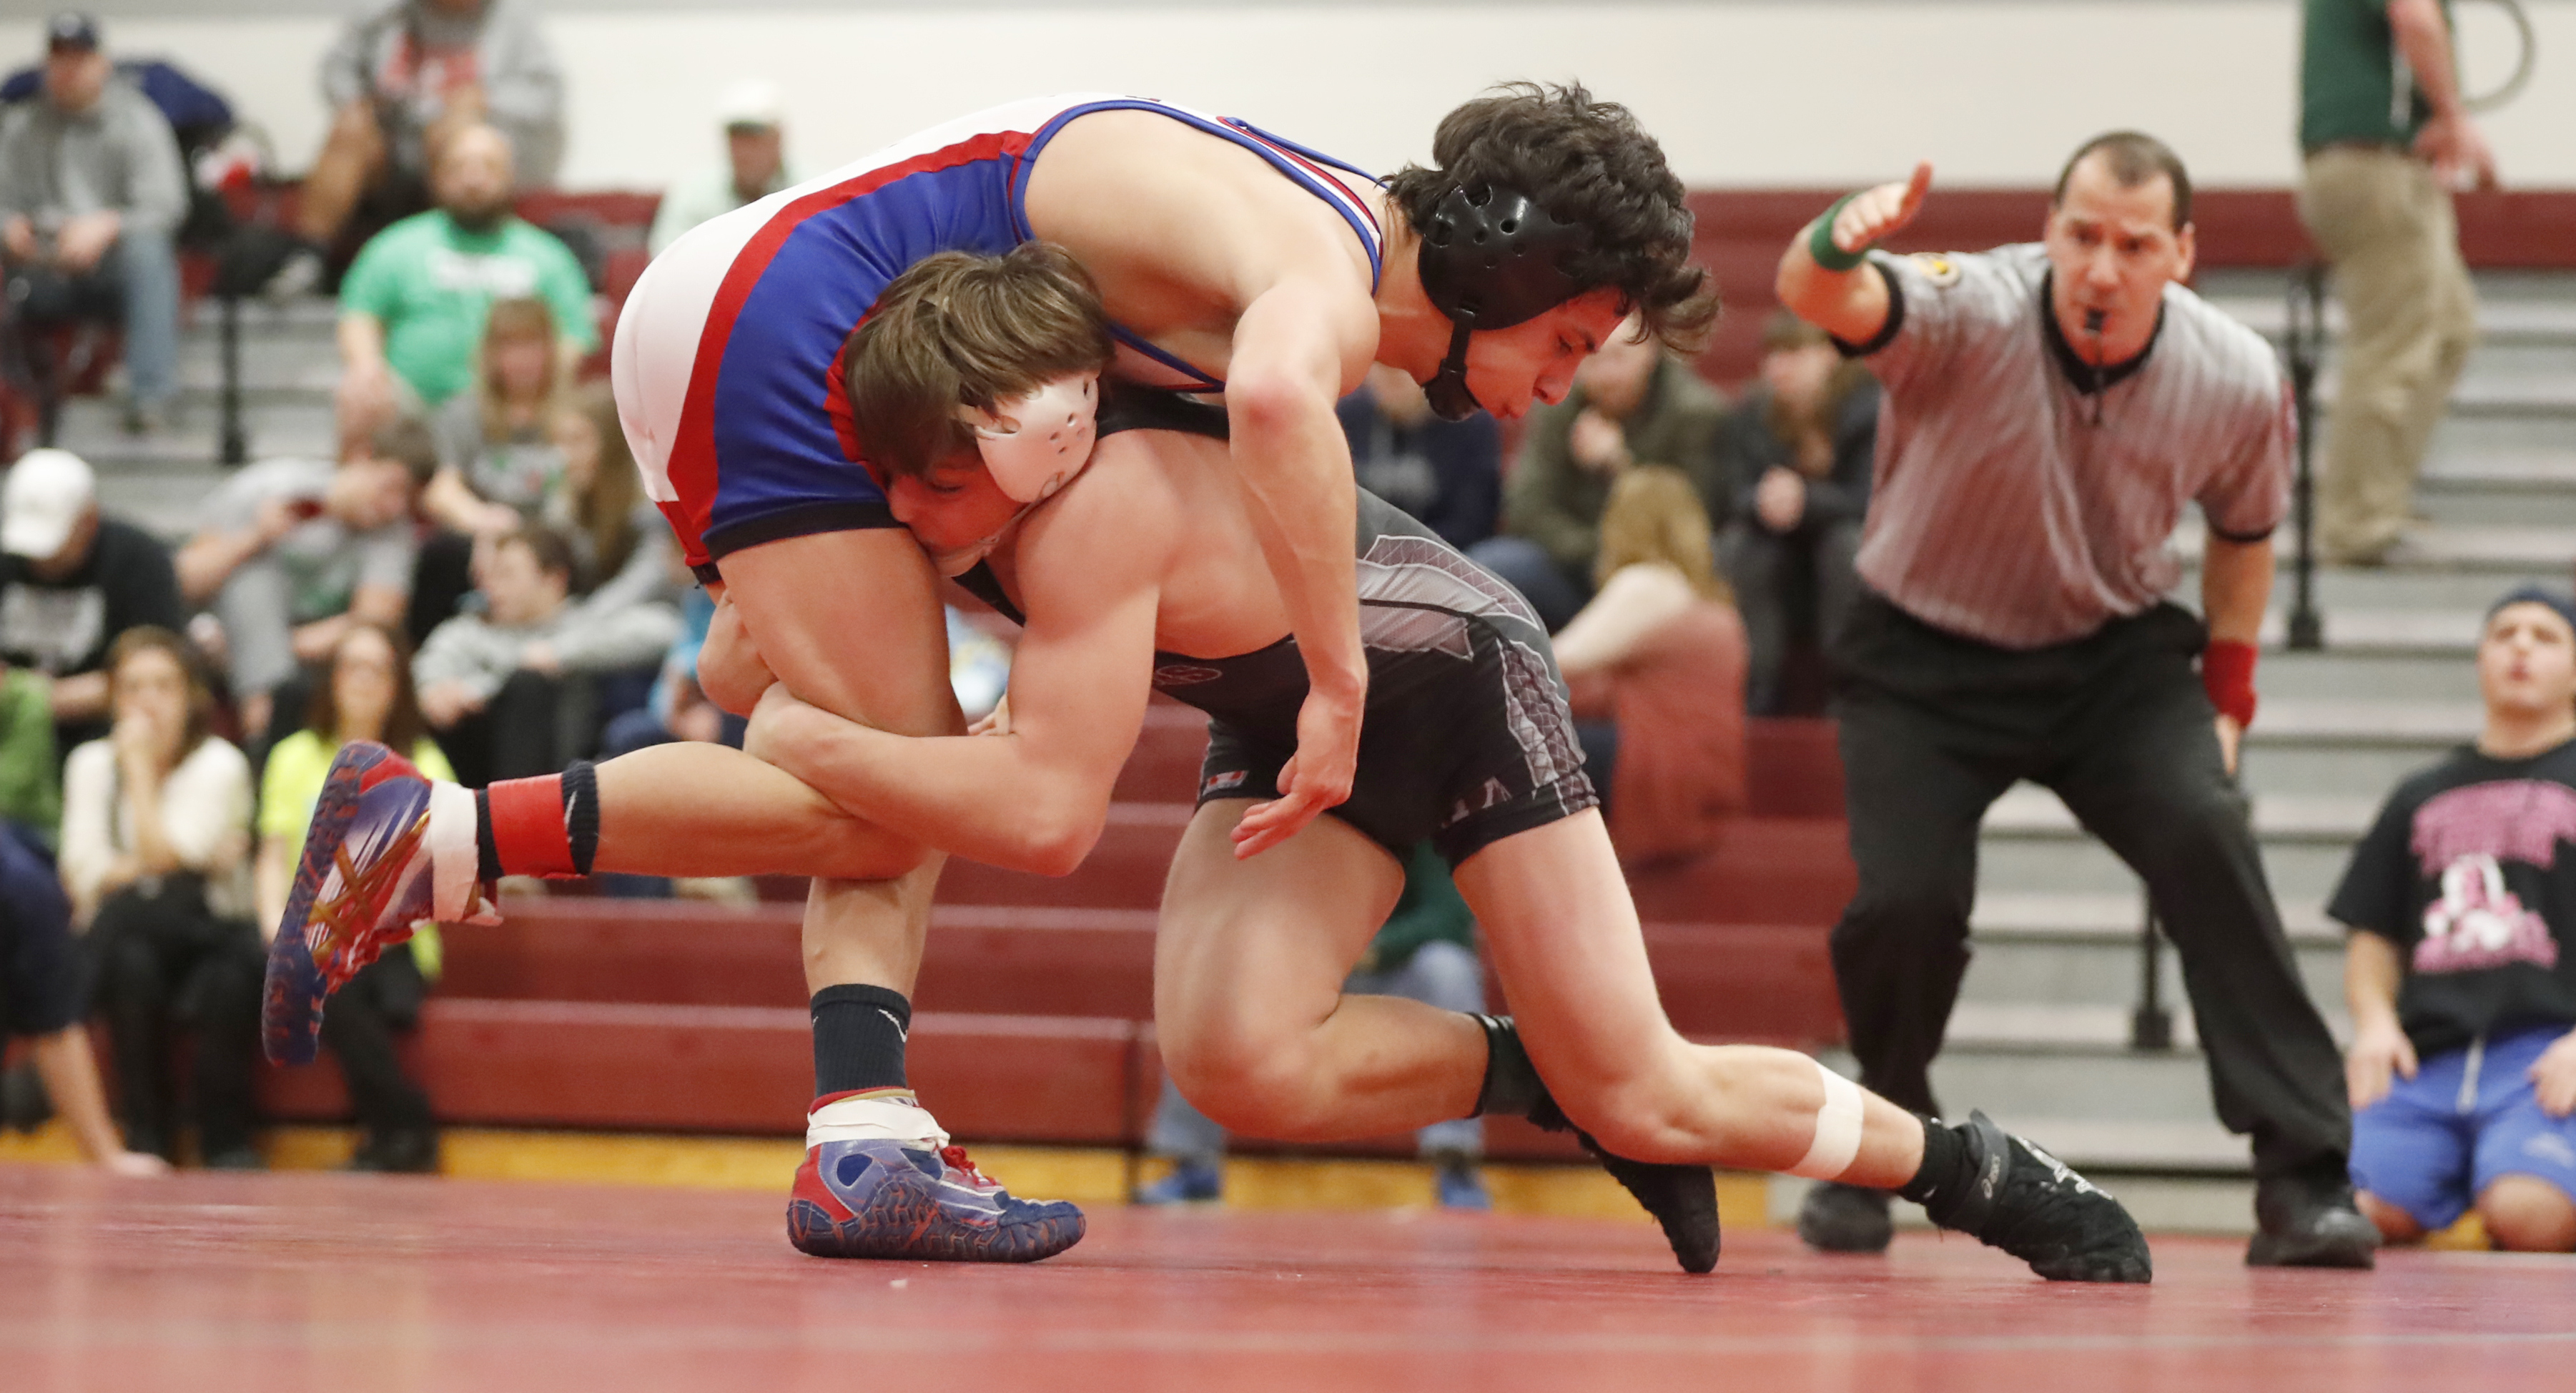 Zach Braddell of Tonawanda defeats Matt Genau of Williamsville South for the 120-pound title during the ECIC Championships at Starpoint on Jan. 21. (Harry Scull Jr./Buffalo News)